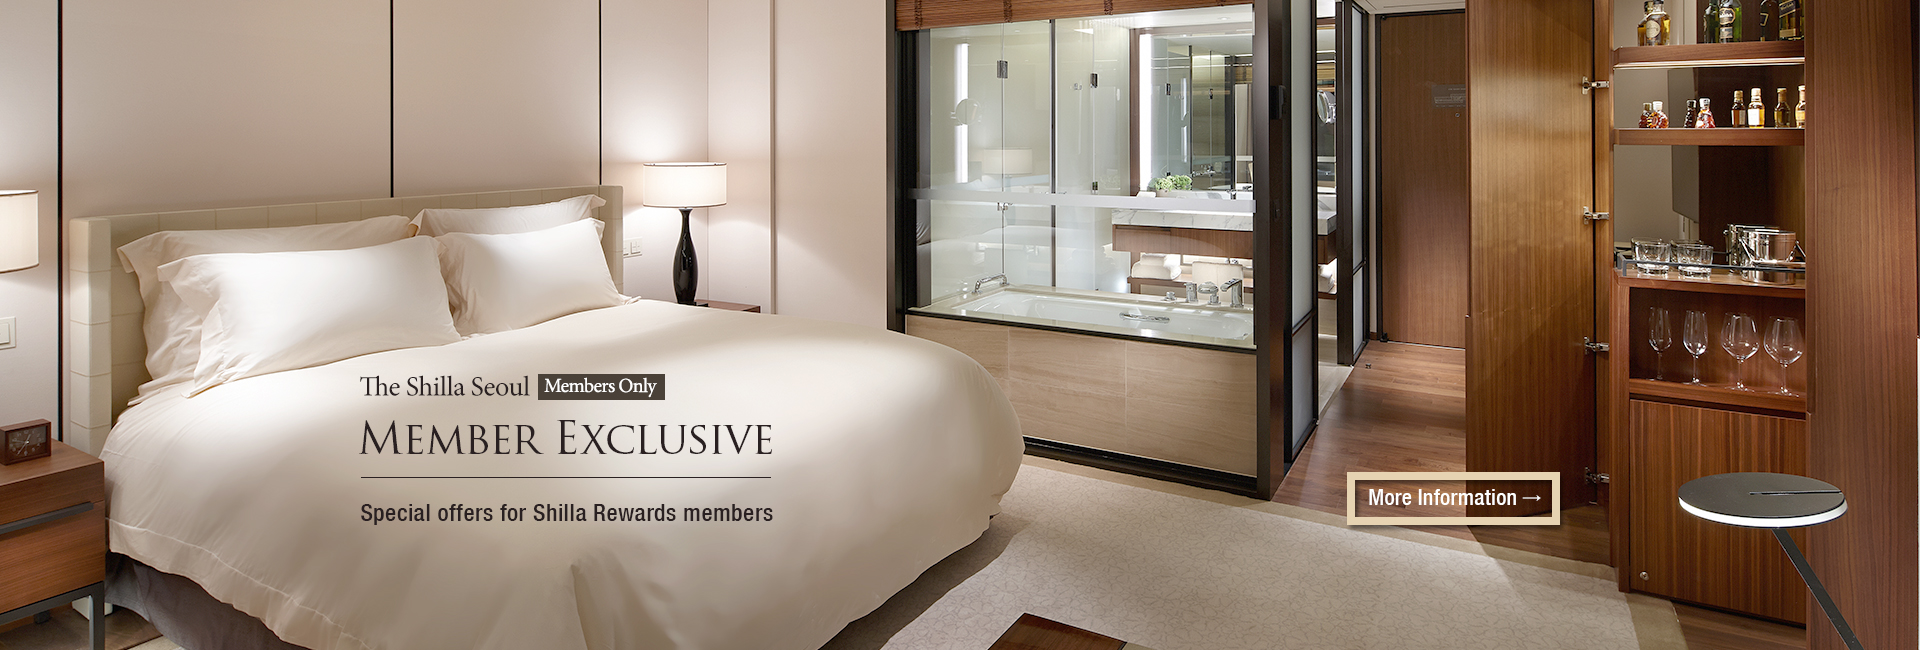 The Shilla Seoul / Member Excluxive